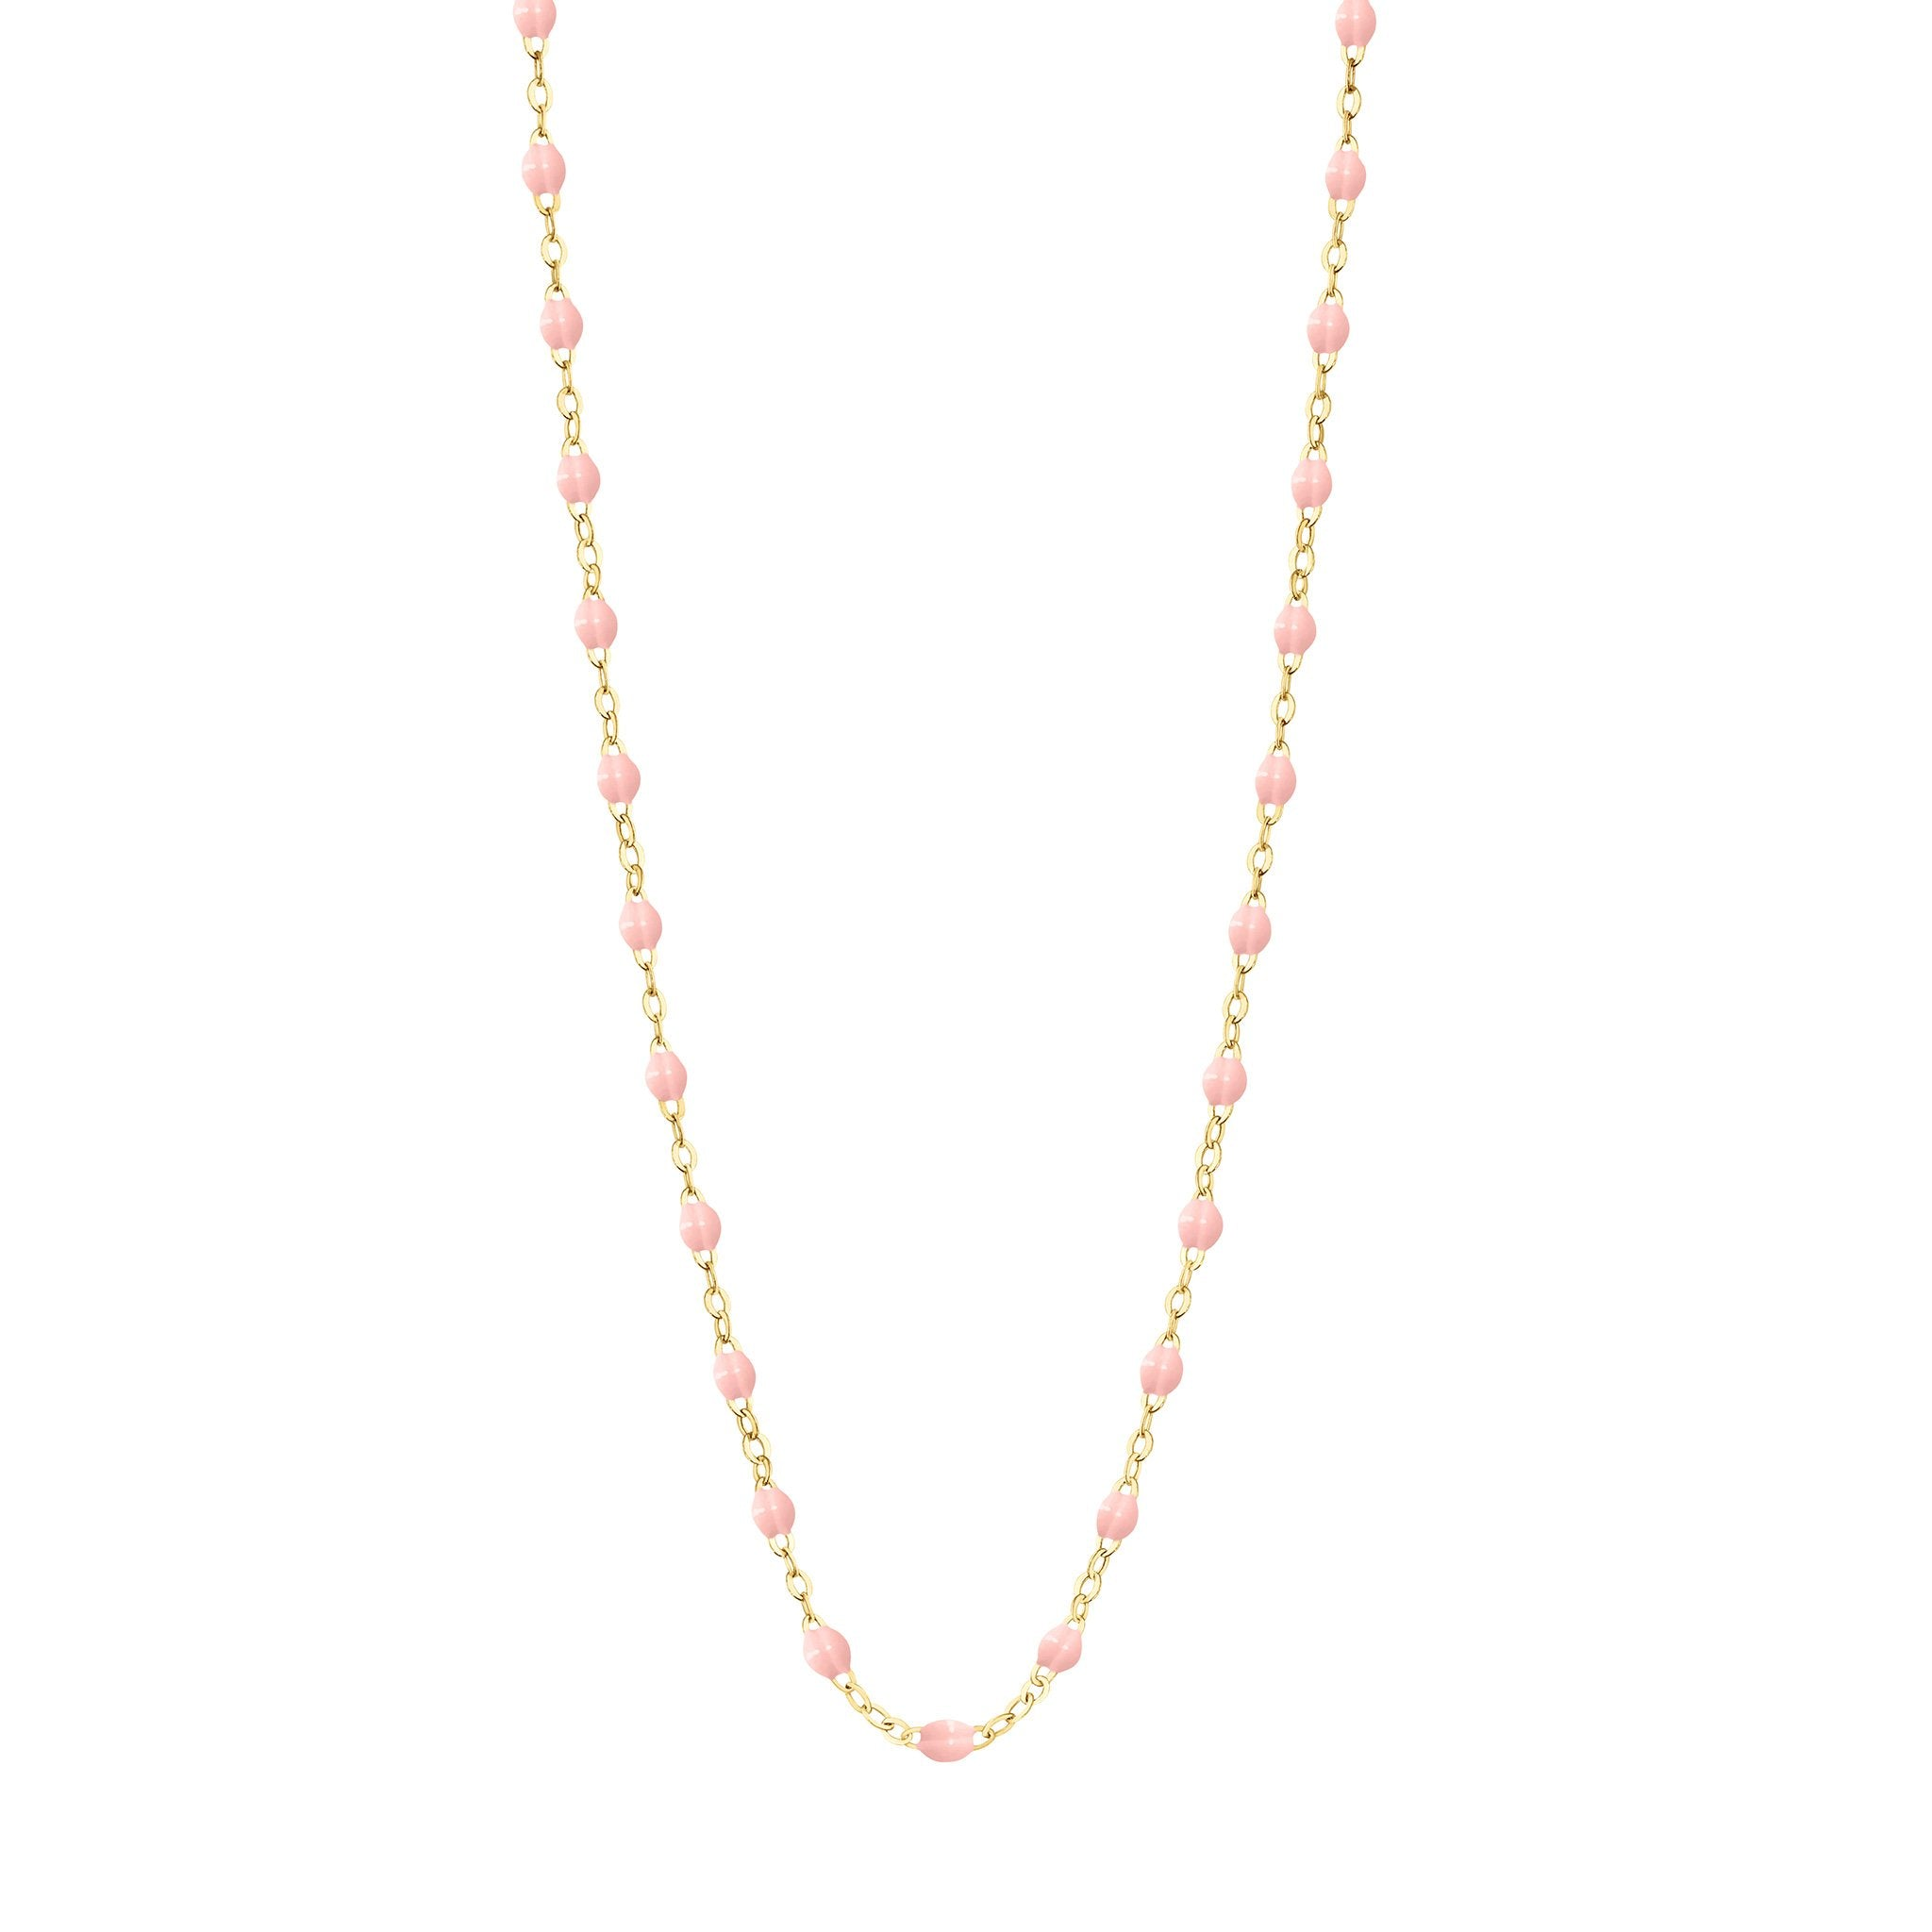 Gigi Clozeau - Classic Gigi Baby Pink necklace, Yellow Gold, 17.7""